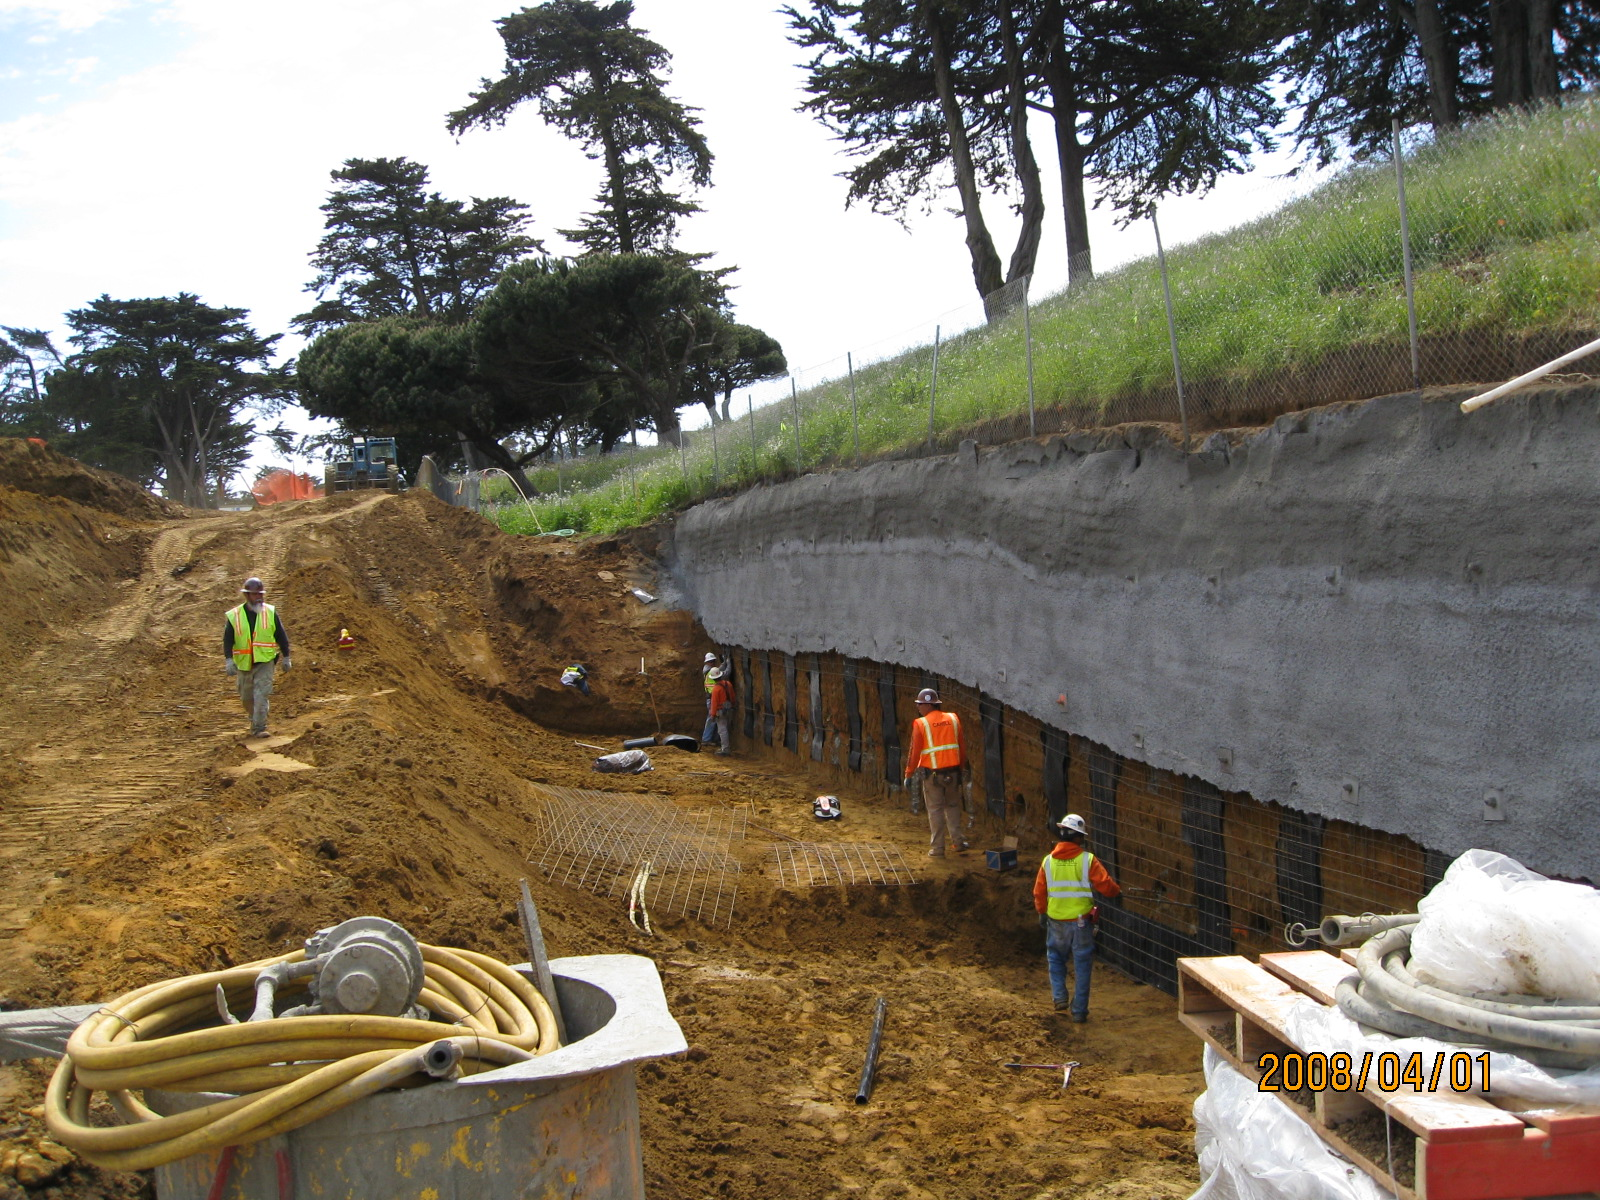 Construction of a soil nail wall which allowed the construction of the Alemany Pump Station in San Francisco.  This project included a reinforced concrete structure, pumps, stand-by generators, security fencing, SCADA, monitoring and disinfection systems, and landscaping.